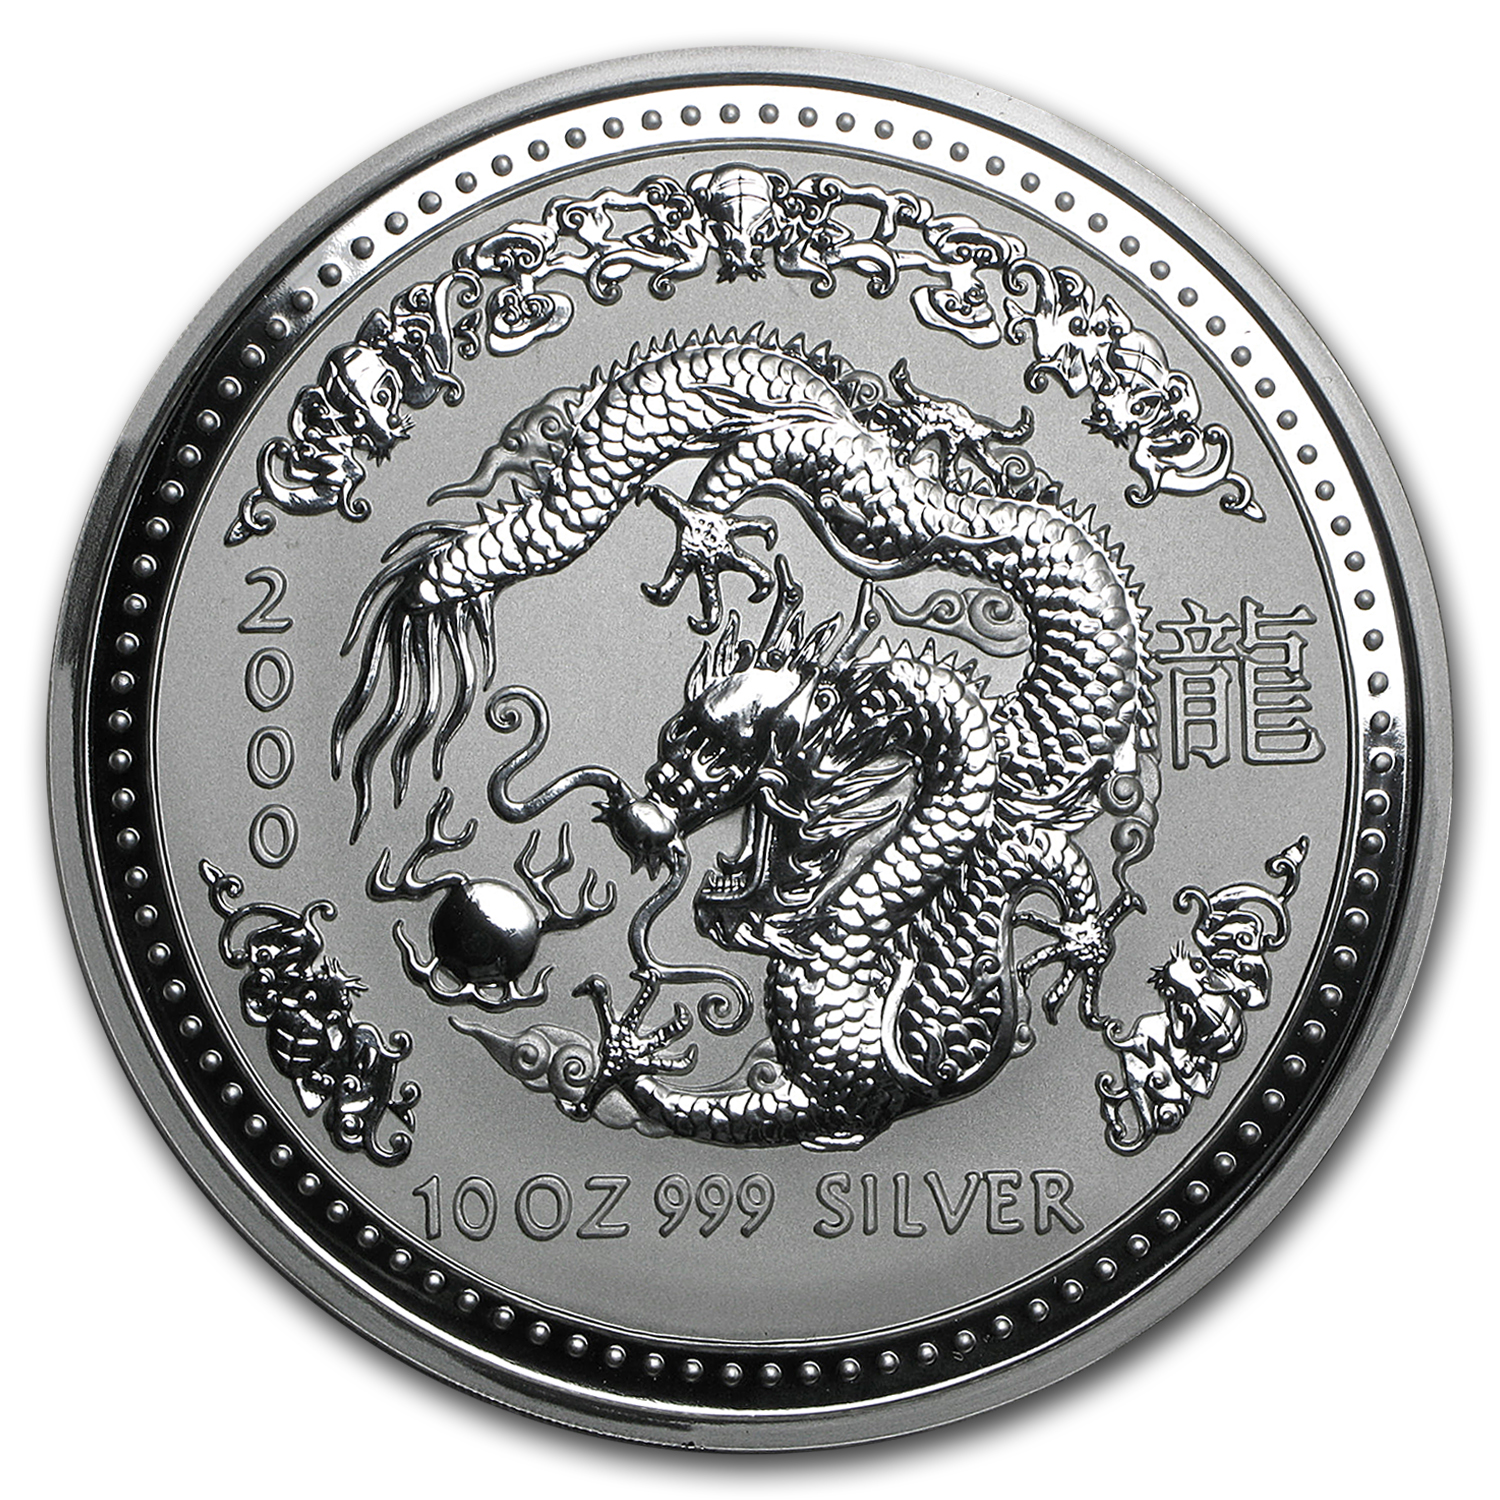 2000 Australia 10 oz Silver Year of the Dragon BU